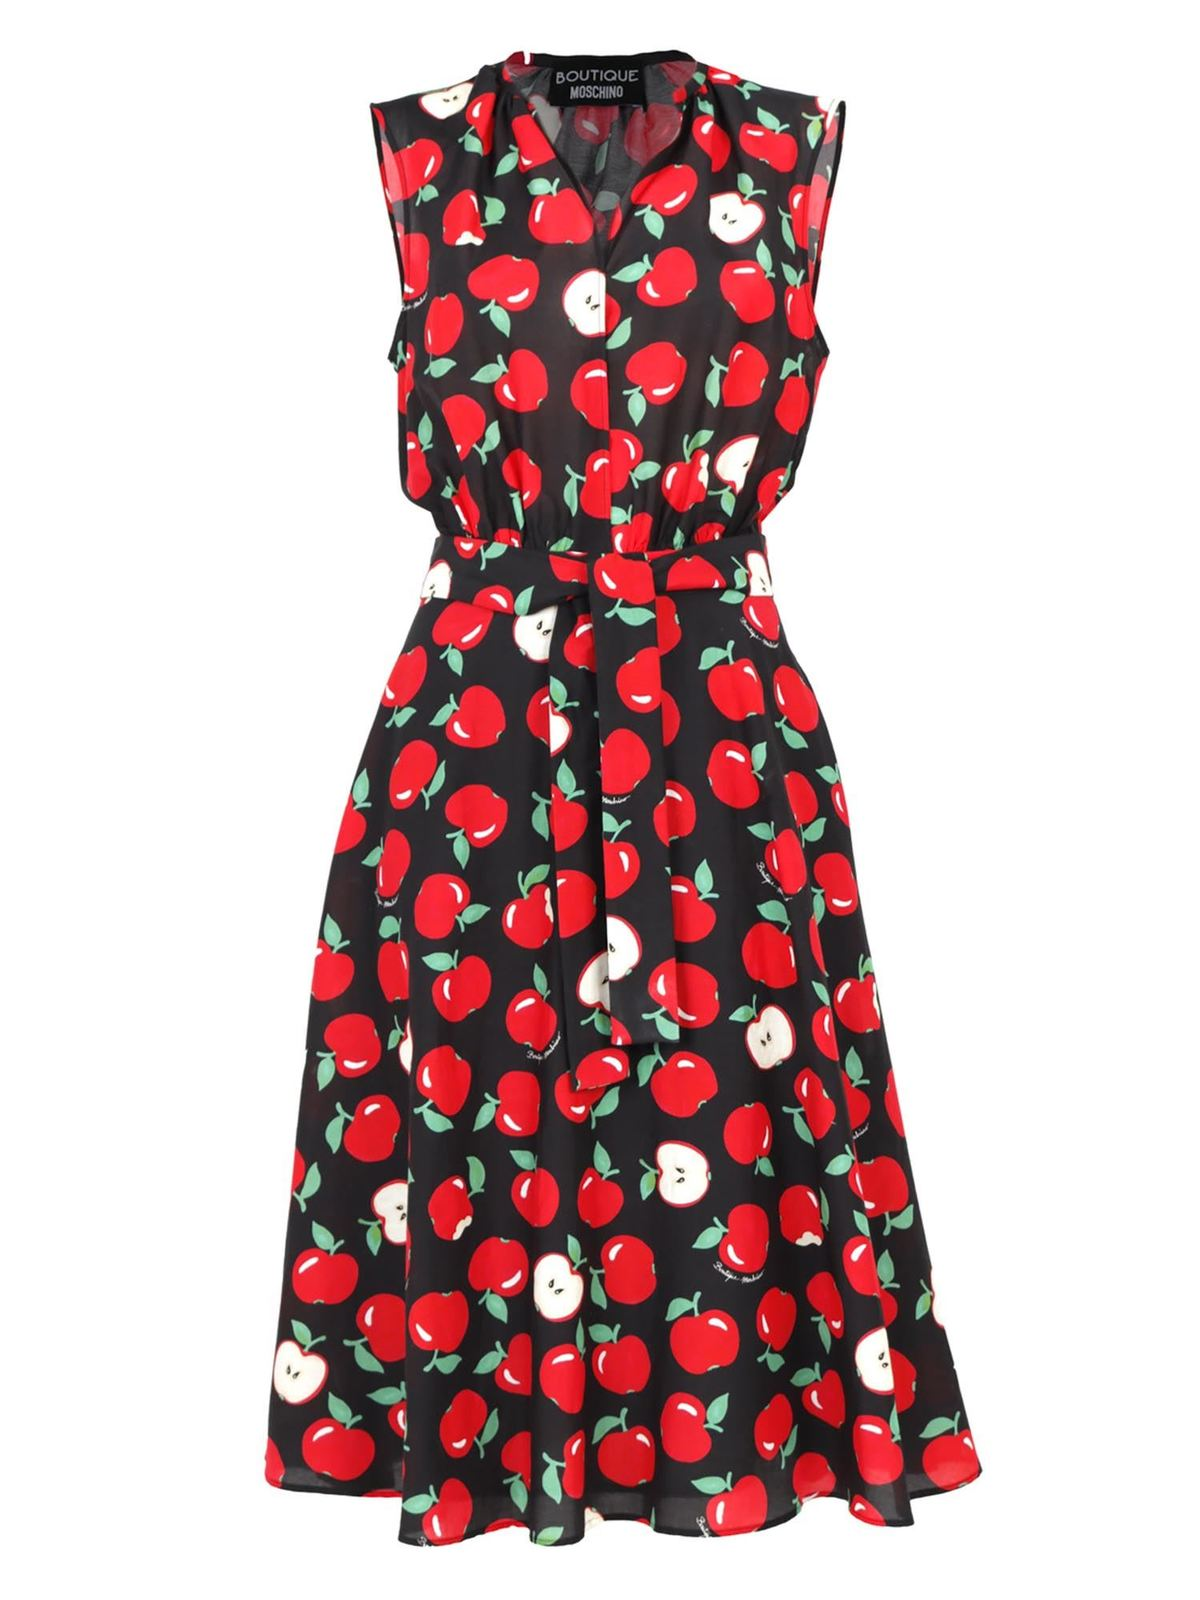 Moschino Boutique Silks APPLE PRINTED DRESS IN BLACK AND RED